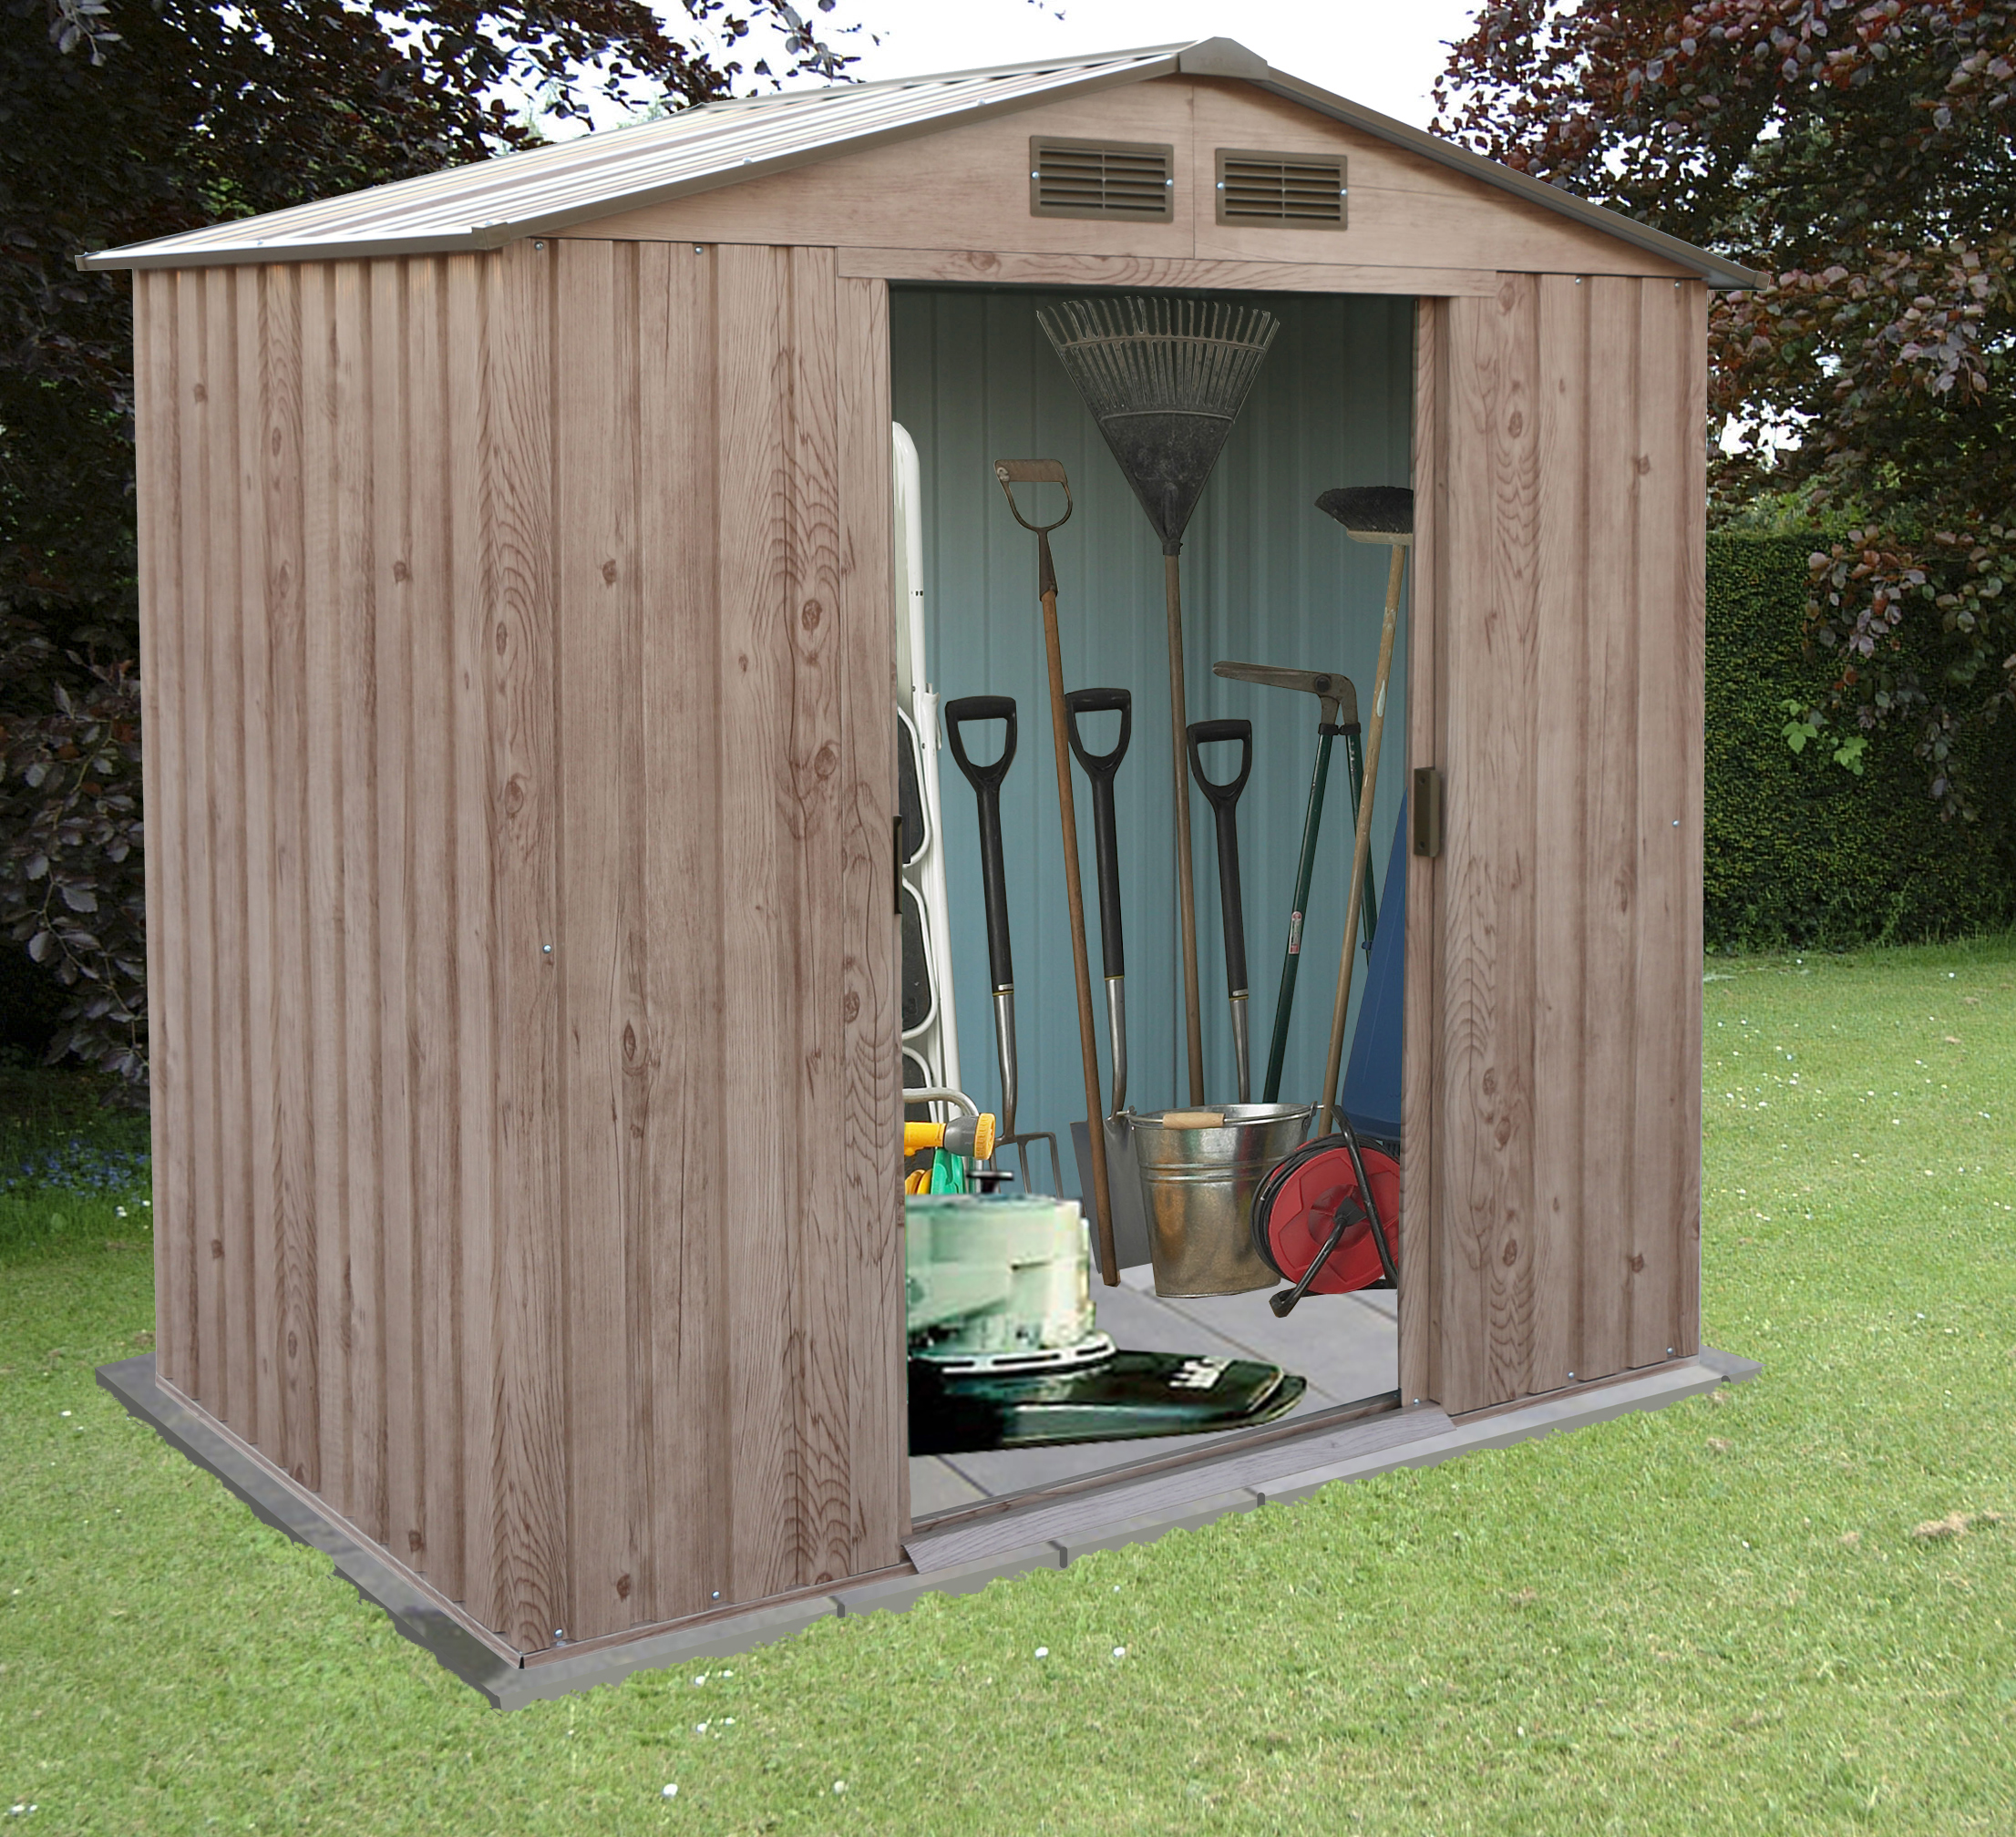 Buy cheap metal garden shed compare sheds garden for Affordable garden sheds